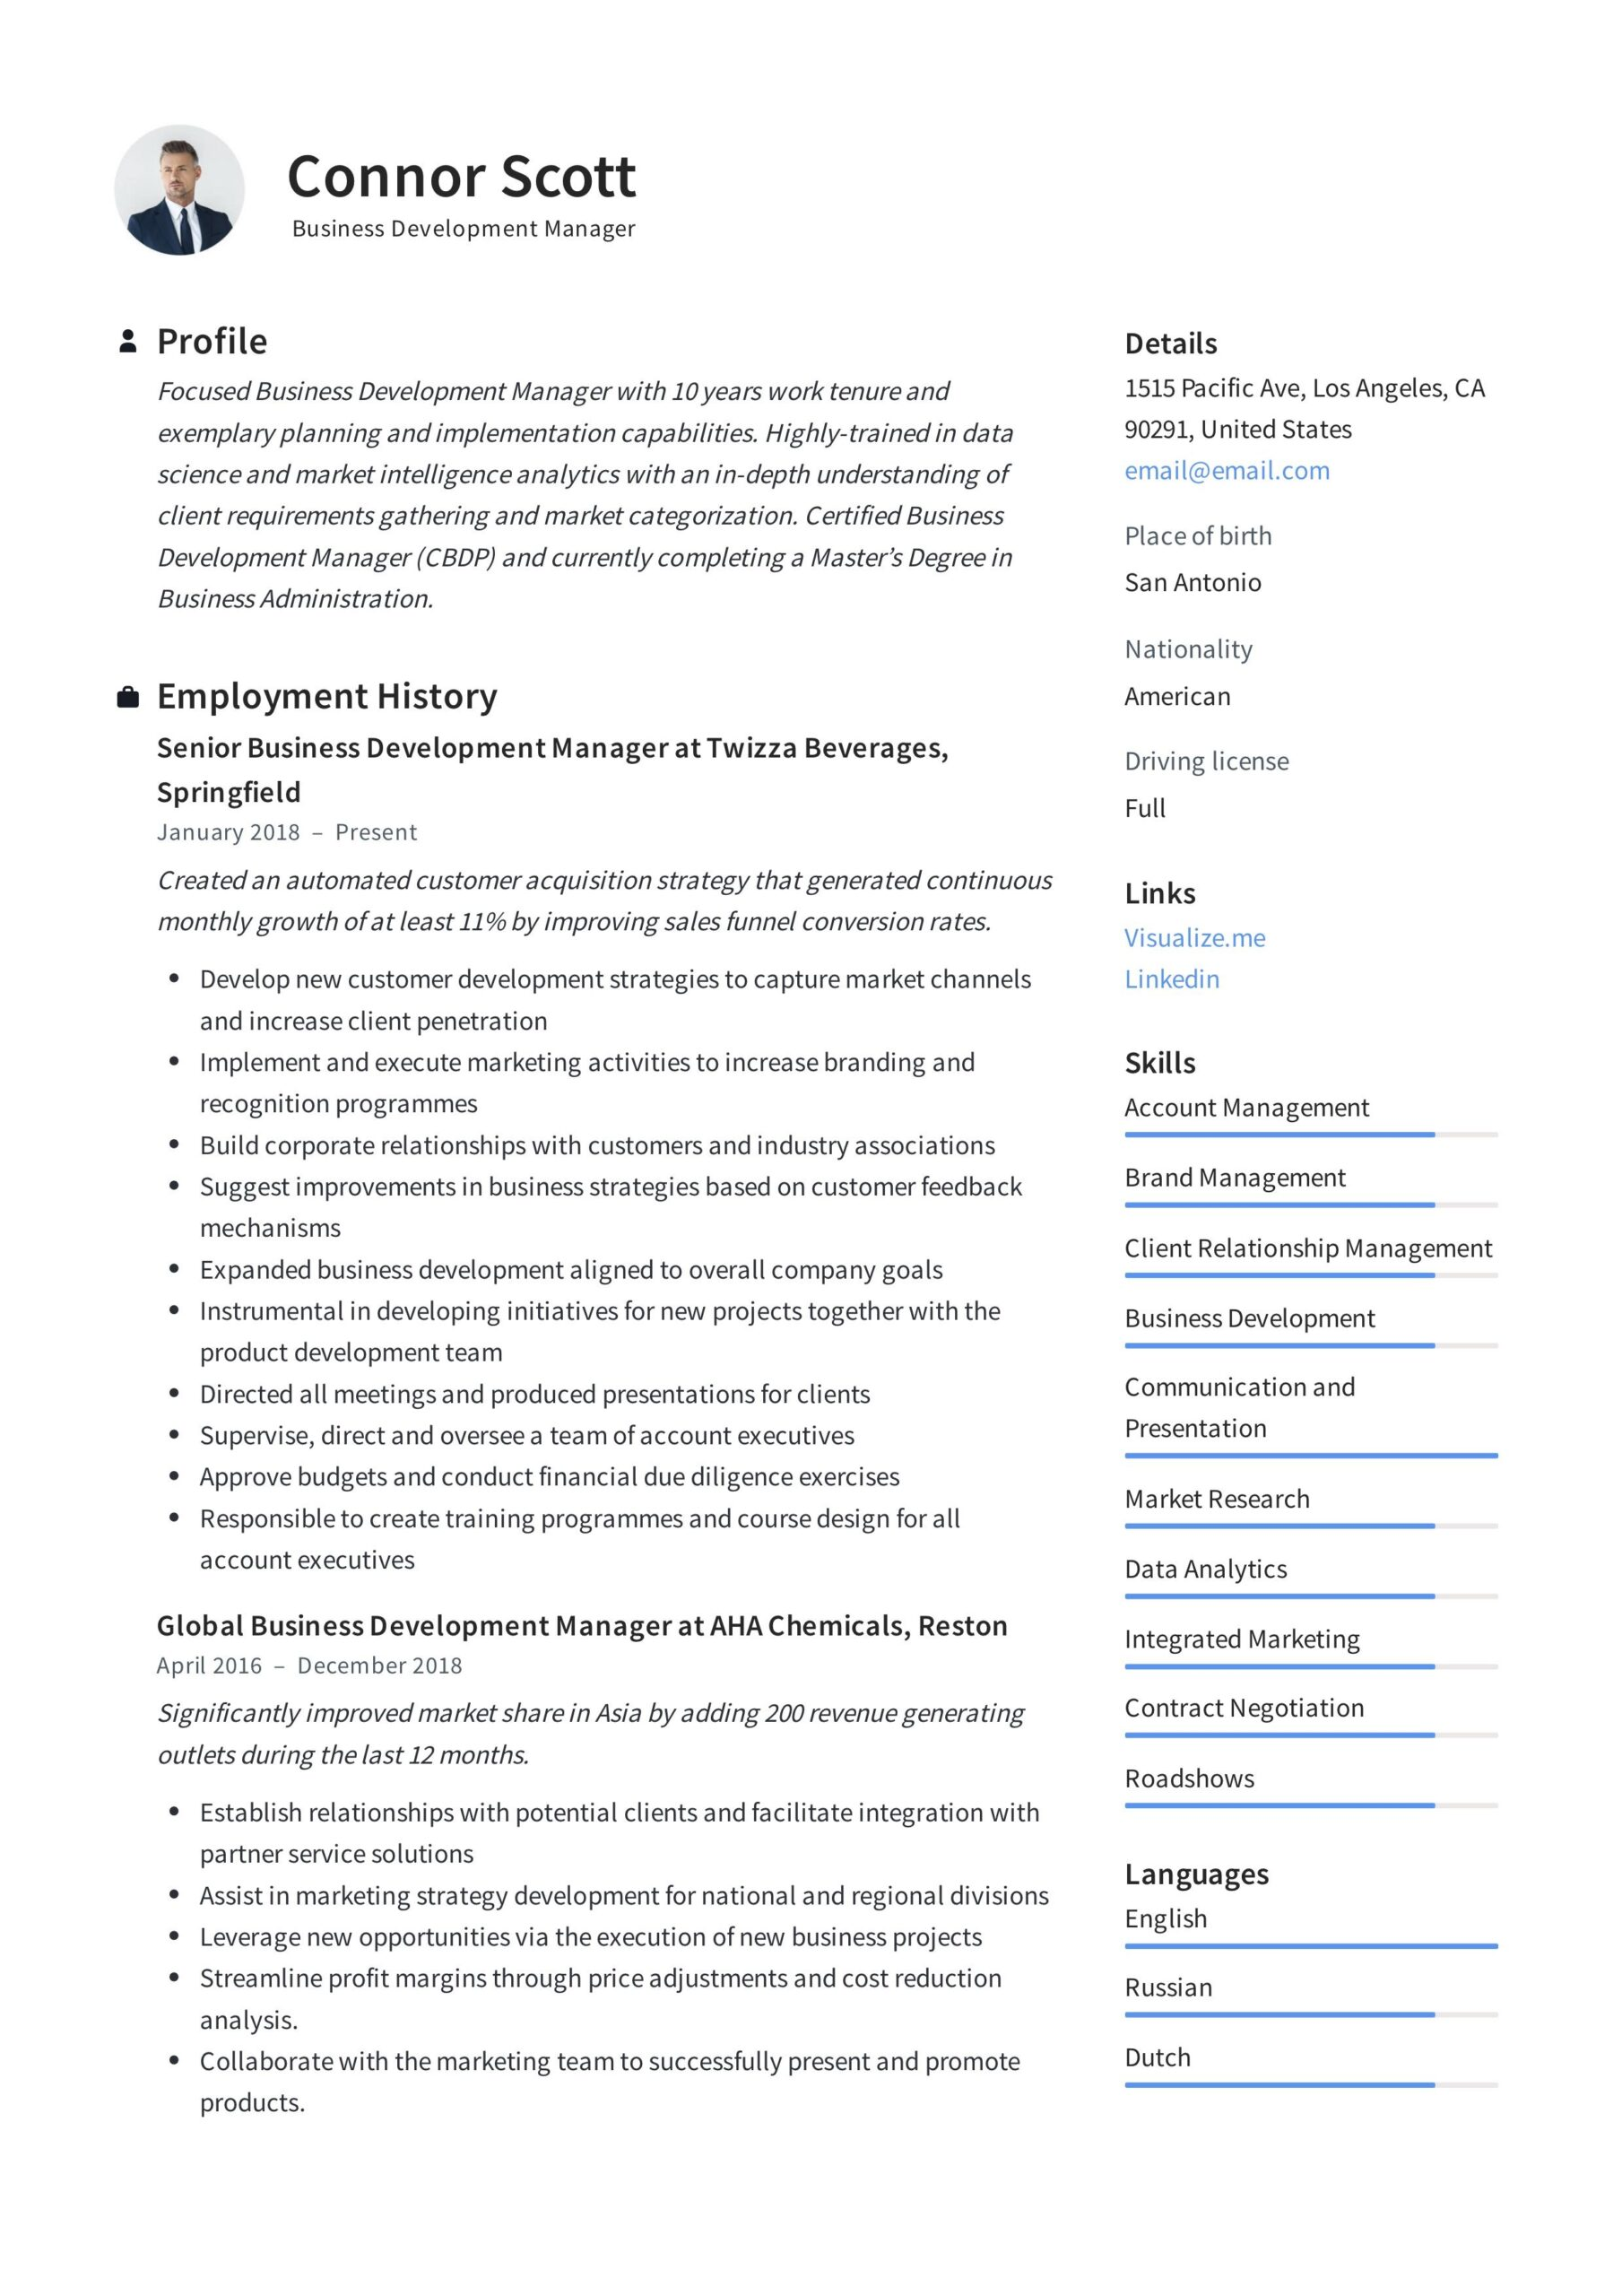 business development manager resume template guide examples writing best format for ats Resume Best Resume Format For Business Development Manager